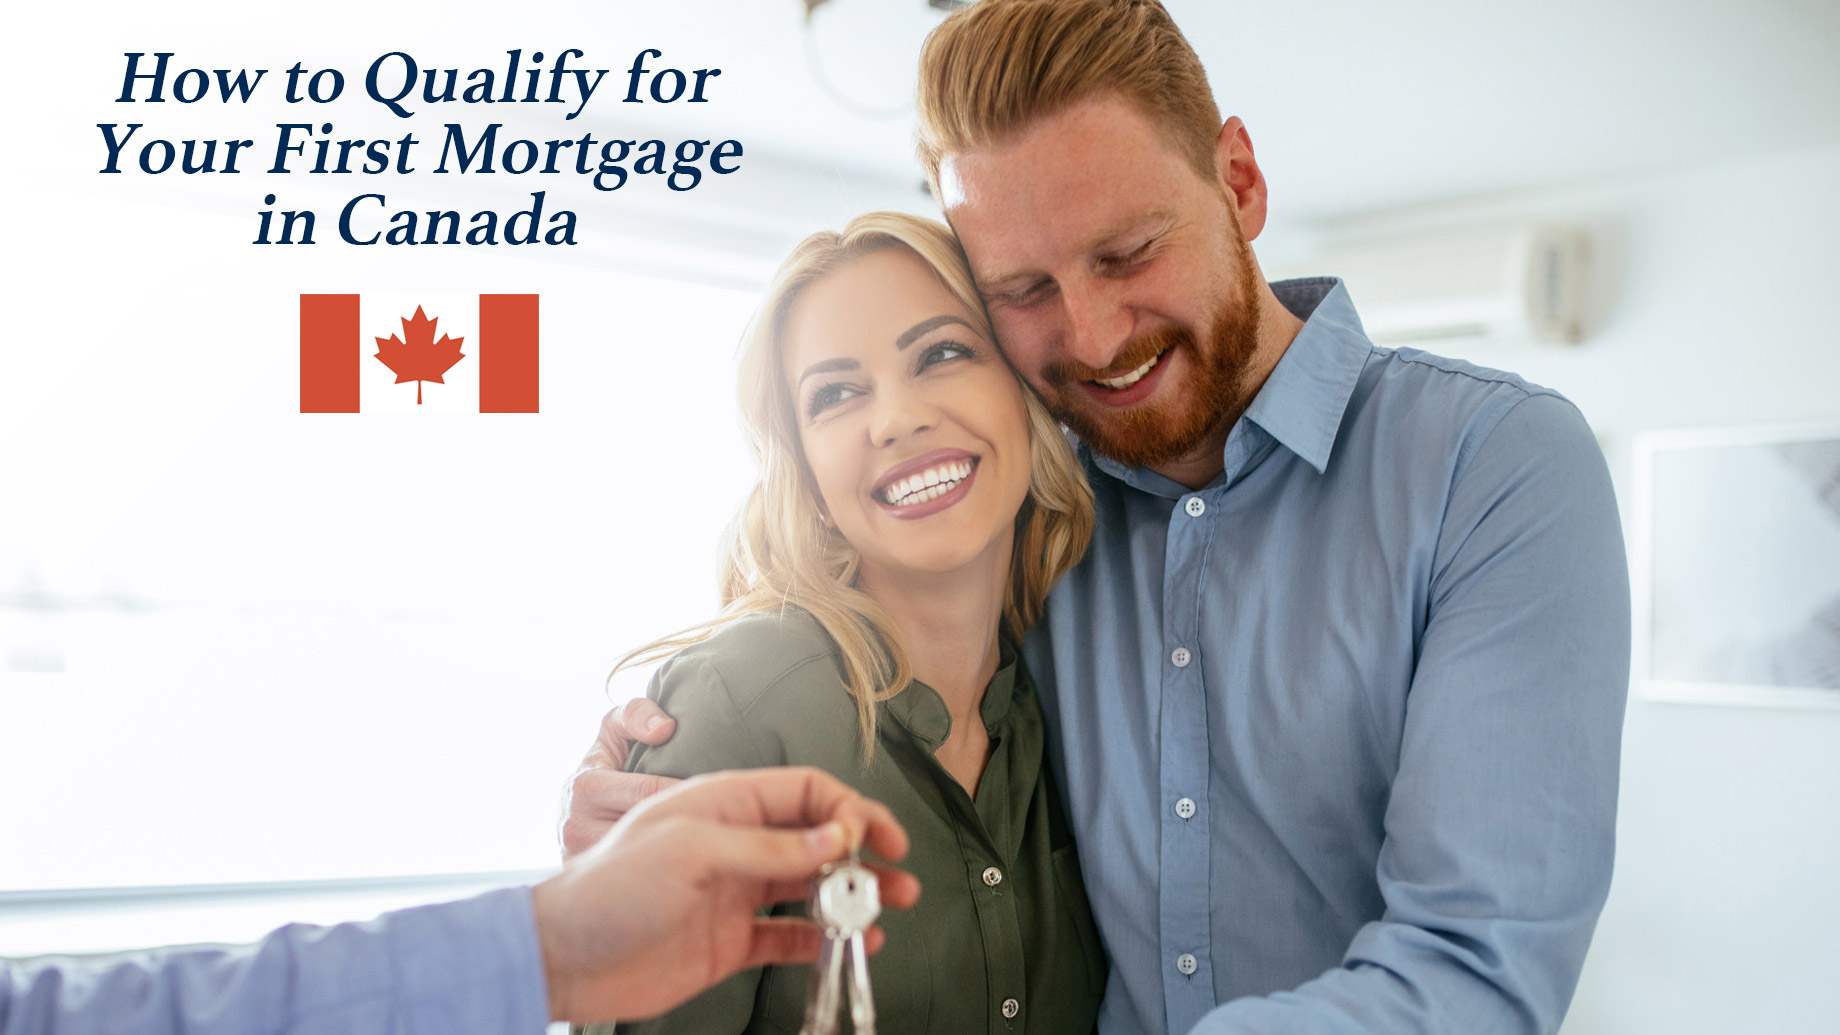 How to Qualify for Your First Mortgage in Canada